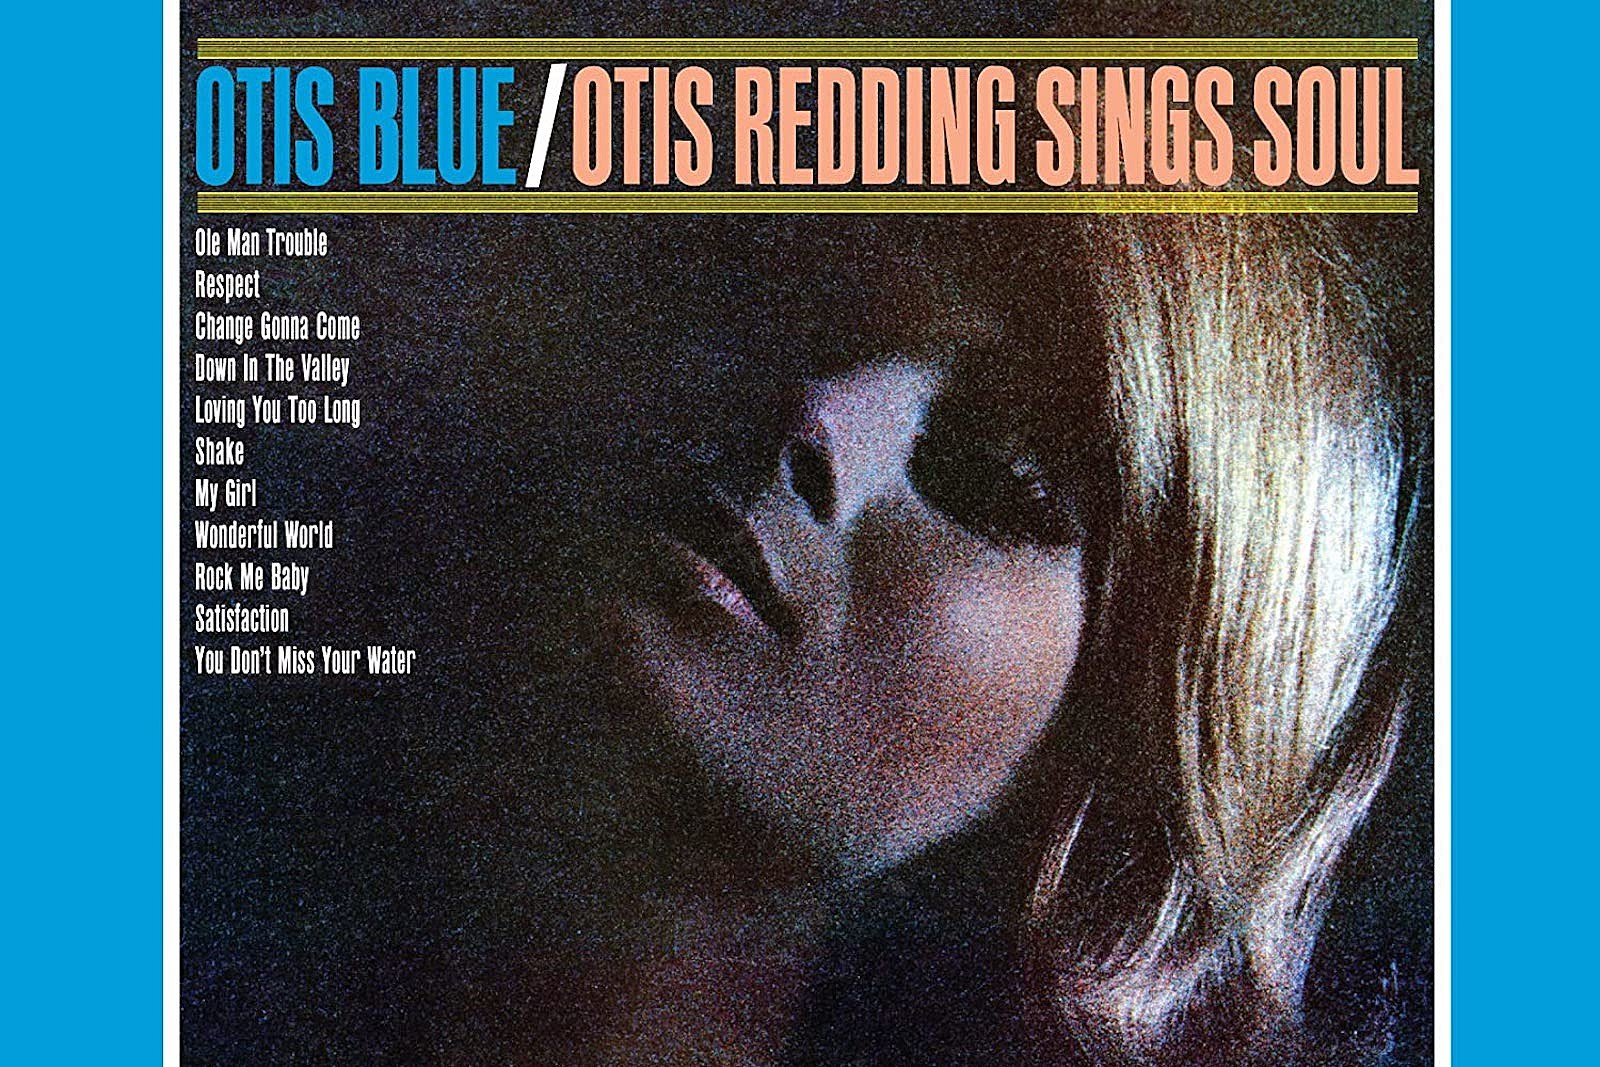 55 Years Ago: Otis Redding Sets a New Standard With 'Otis Blue'